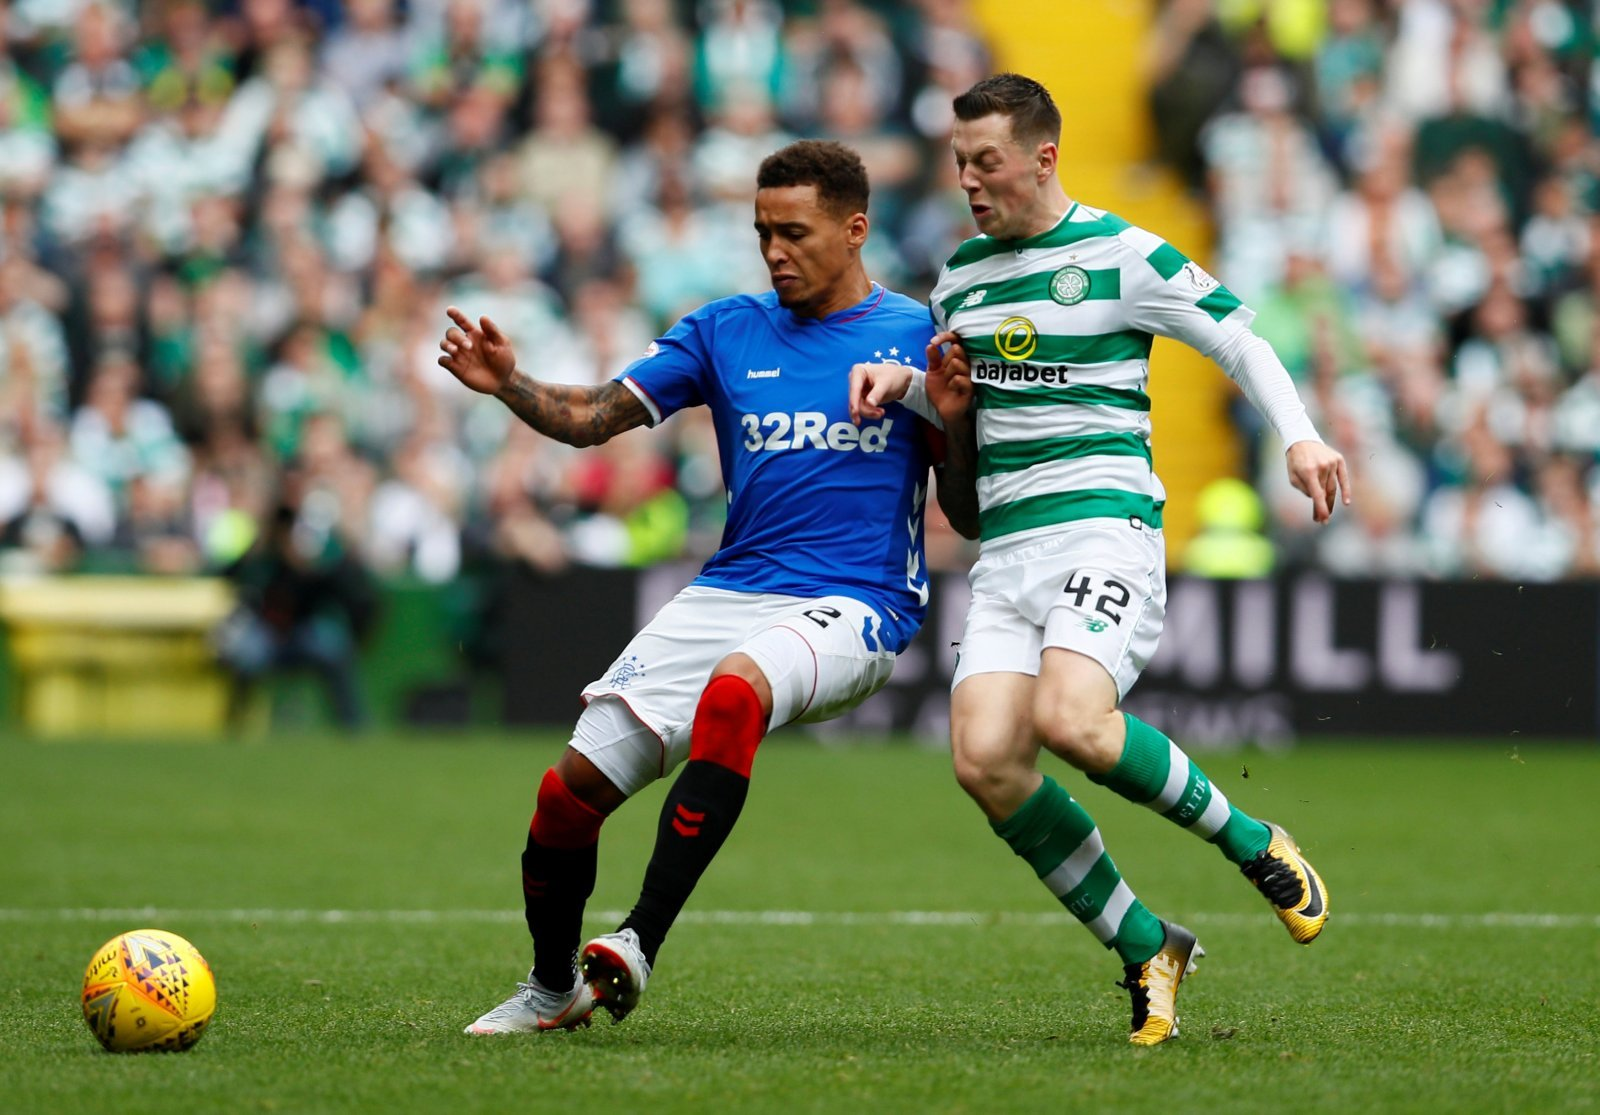 James Tavernier's Rangers deal delighted Celtic fans on Twitter last night